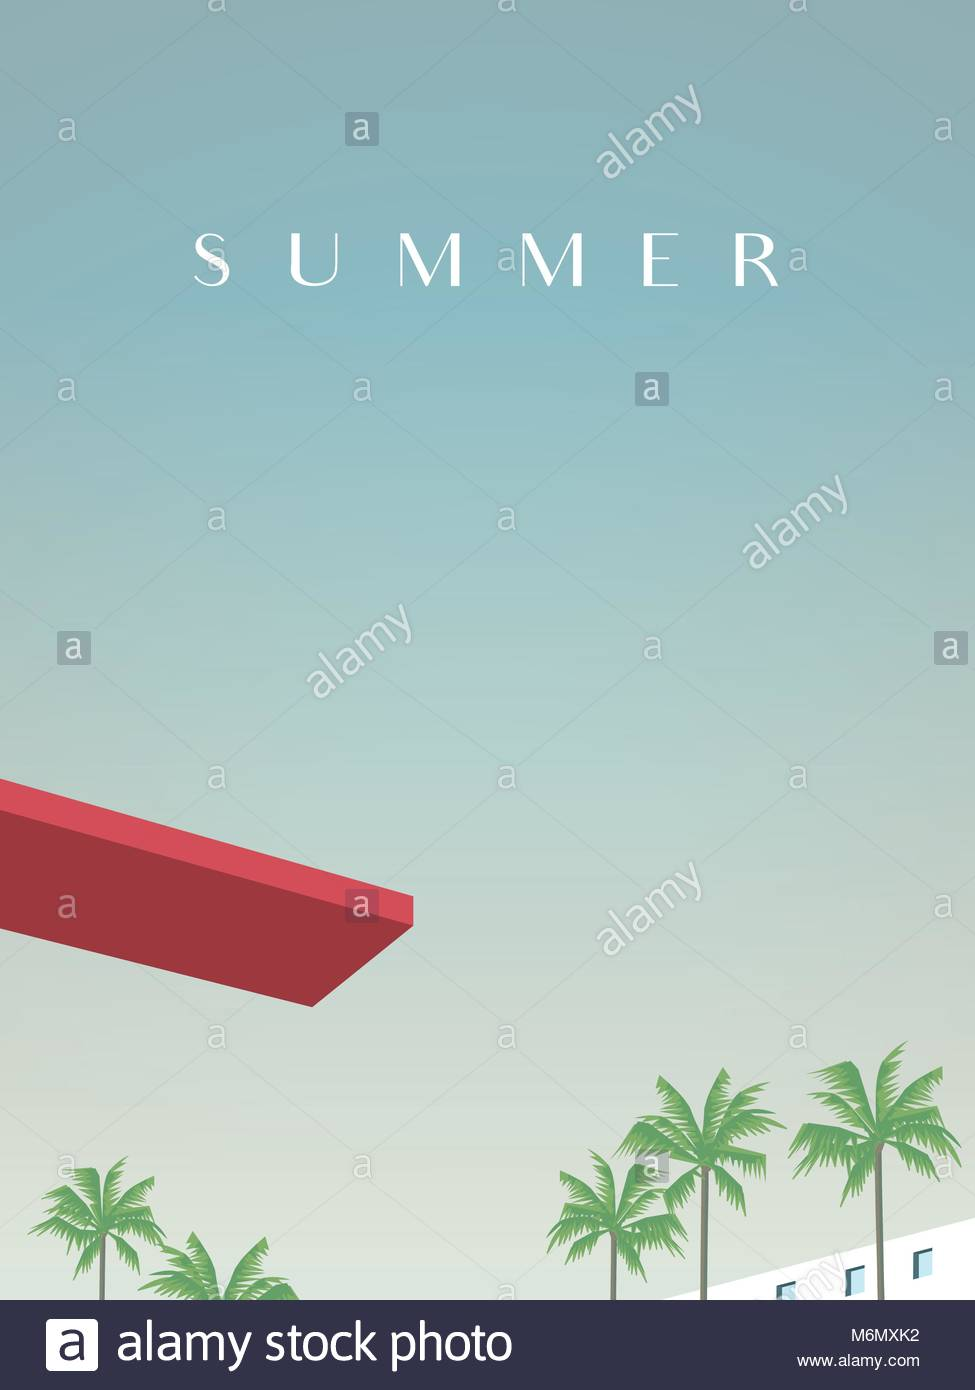 Summer retro vintage poster vector template with jumping board over ...